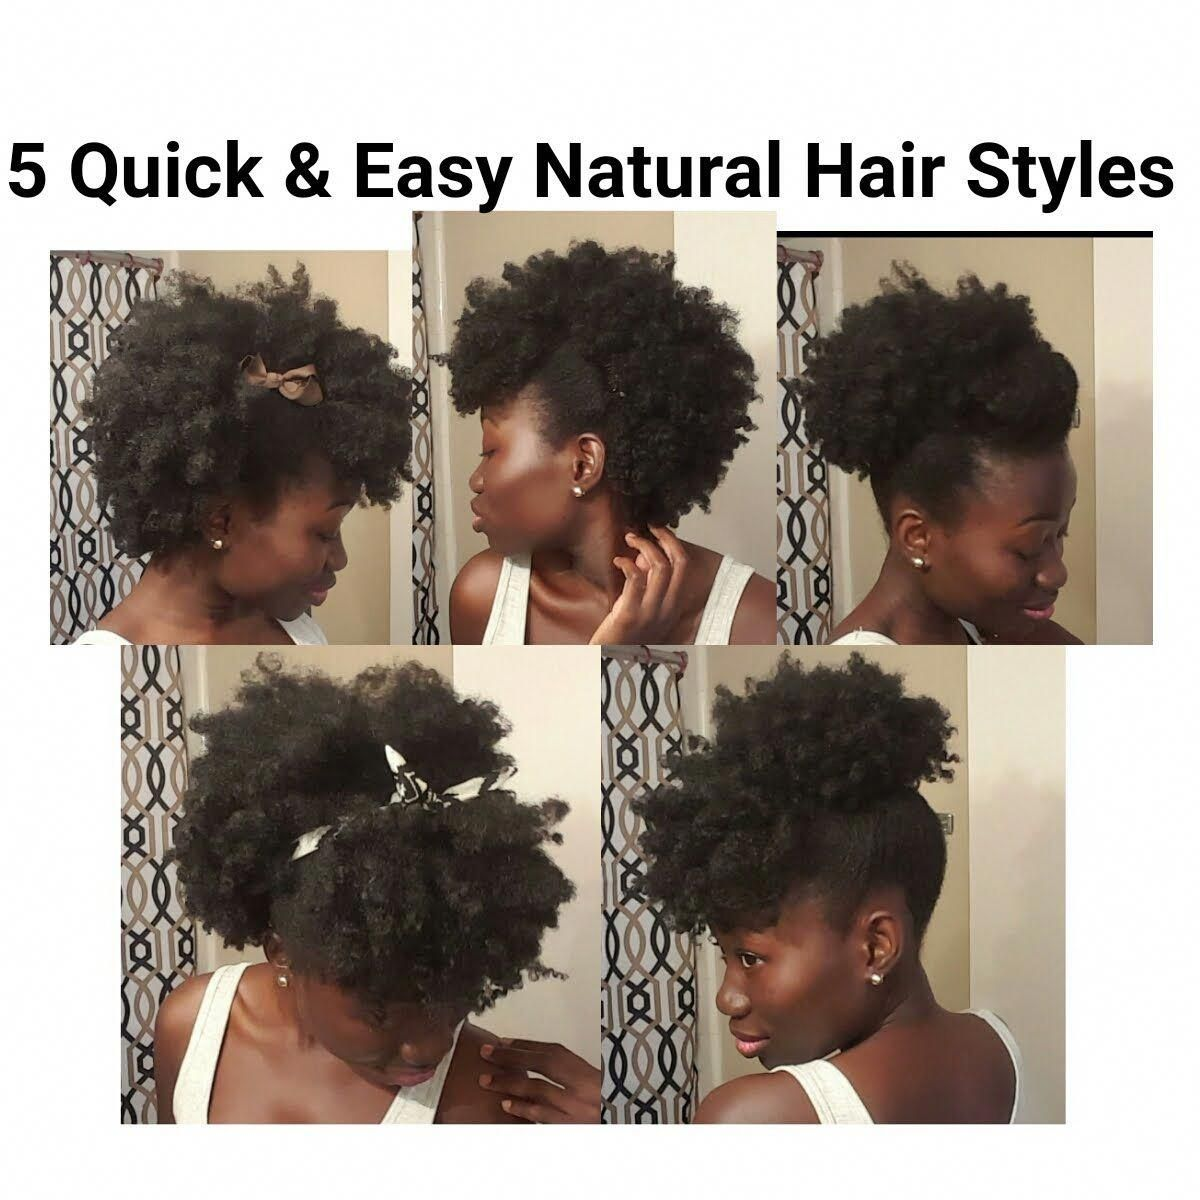 These Natural Hairstyles For Short Hair Are Fab Naturalhairstylesforshorthair Natural Hair Styles Easy Natural Hair Styles Medium Hair Styles